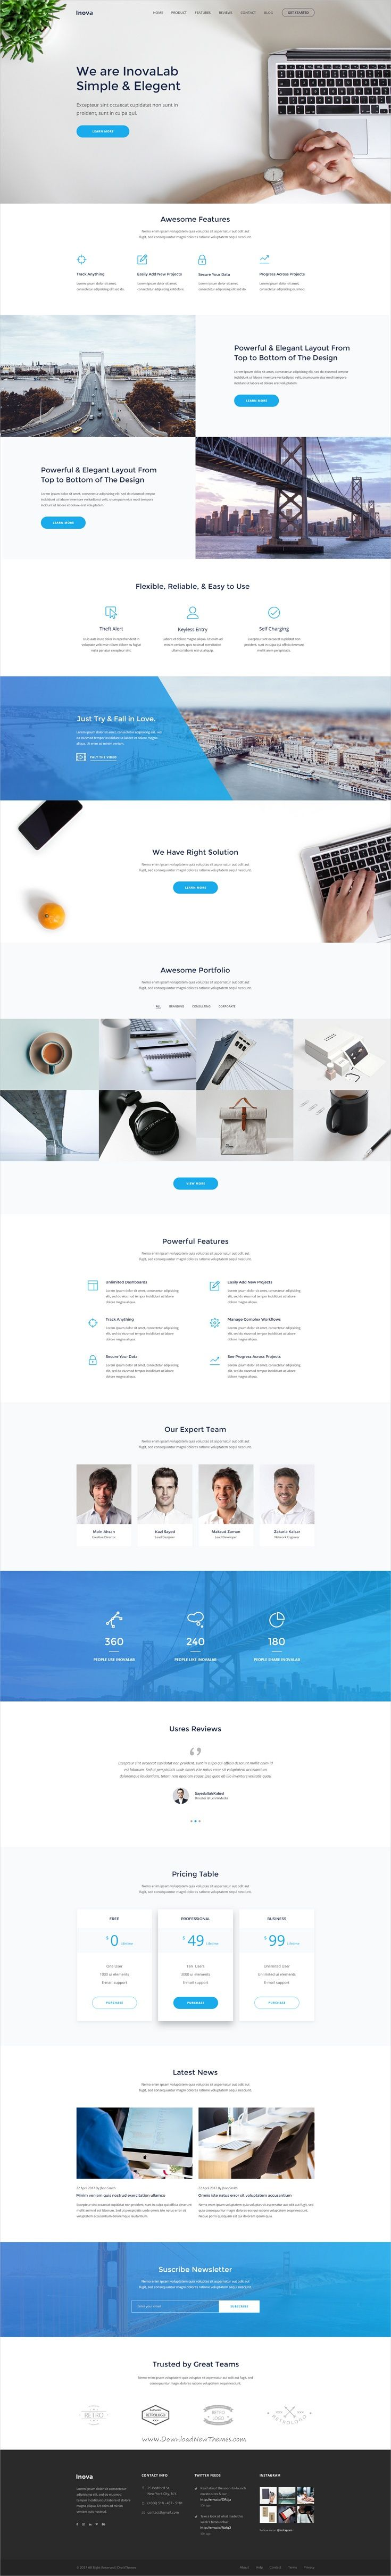 Amazing 1.25 Button Template Huge 12 Piece Puzzle Template Flat 1st Time Job Resume 2.25 Button Template Youthful 2007 Word Templates Brown2015 Calendar Template Microsoft Inova   Product, SaaS, App, Startup, Marketing, Book Landing Page ..